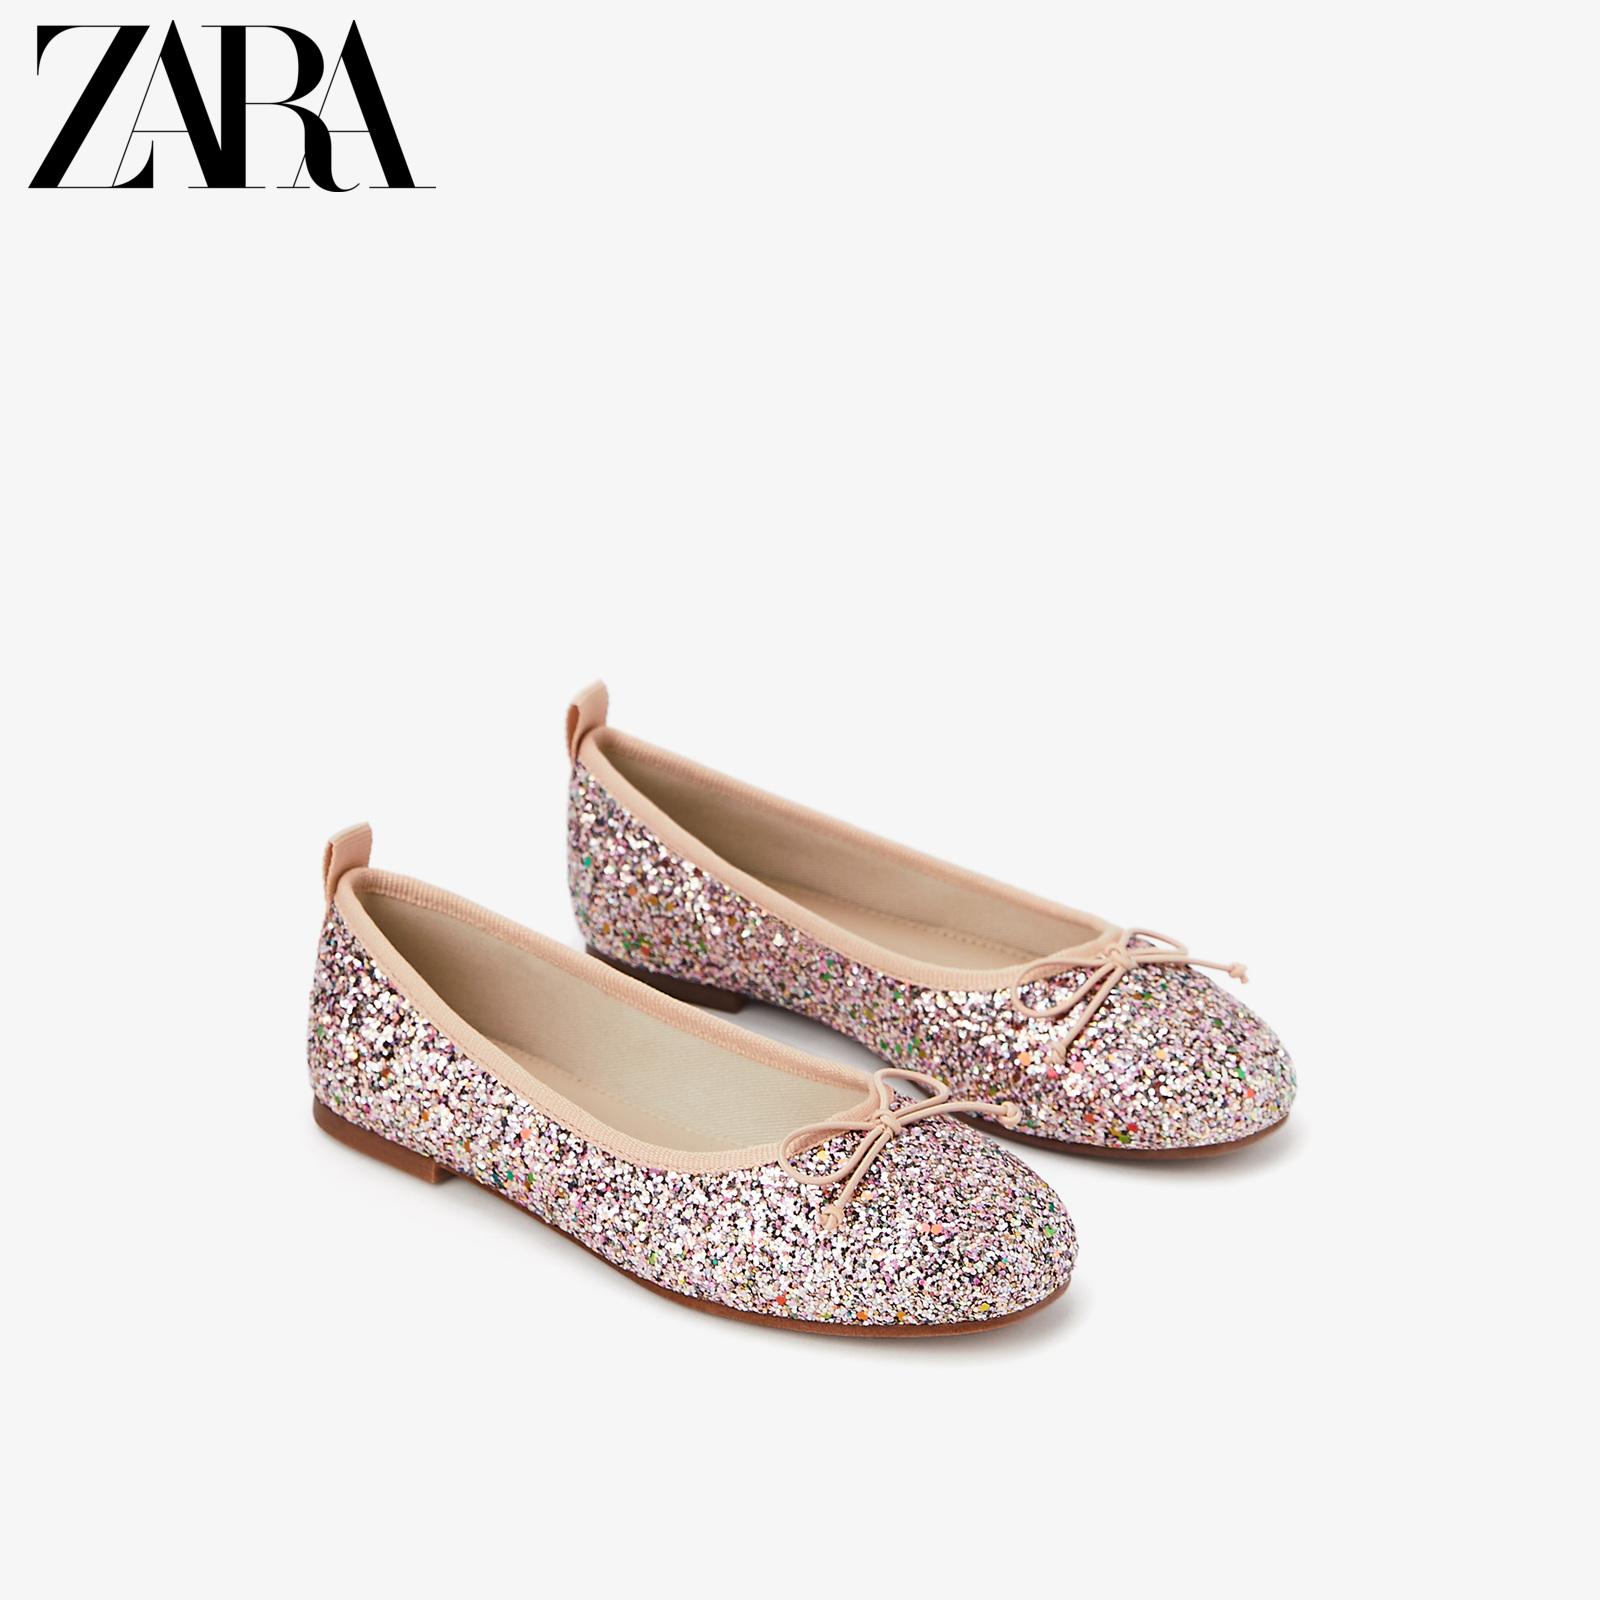 Zara new children's shoes girls' new bright ballet soft sole flat shoes 1359603050